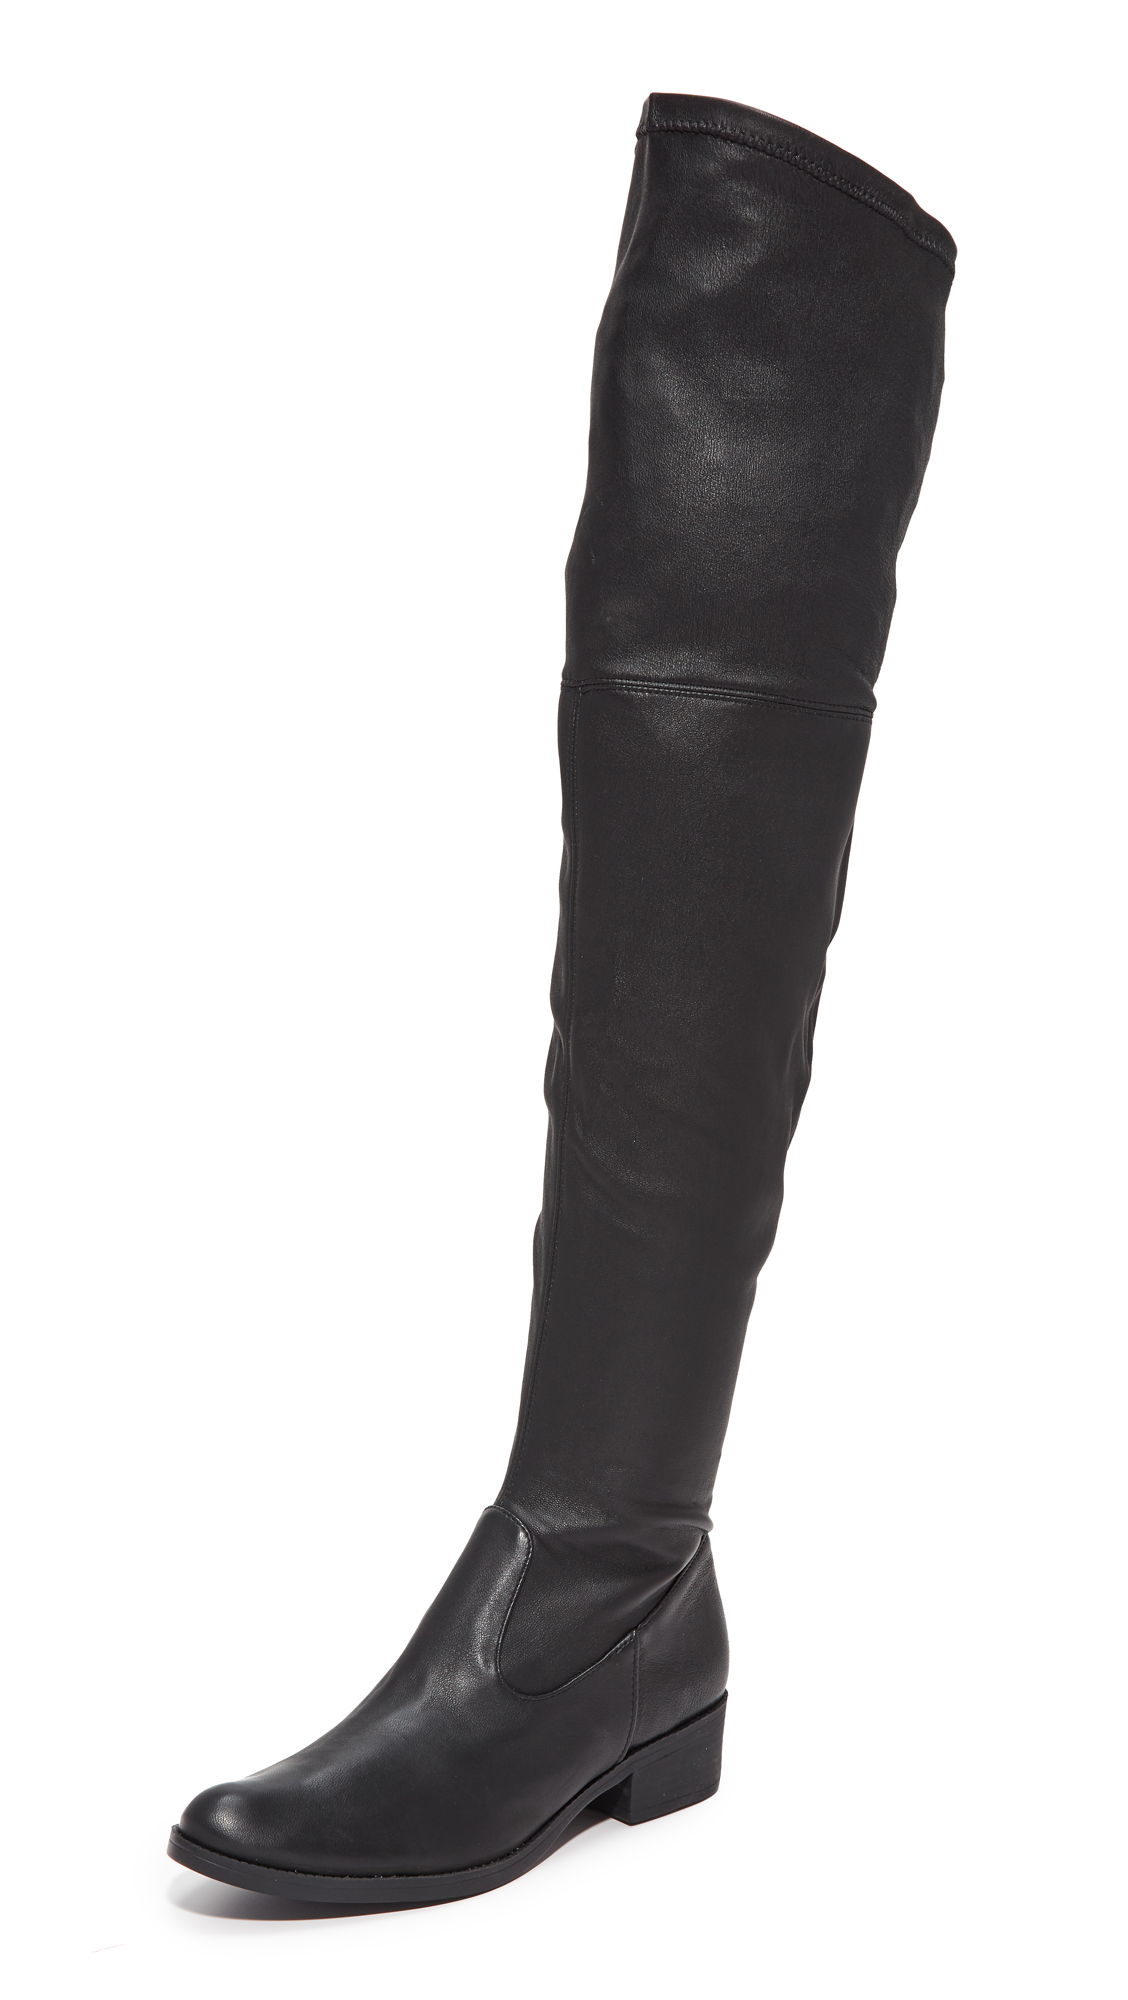 Schutz Rovari Over the Knee Stretch Boots - Black